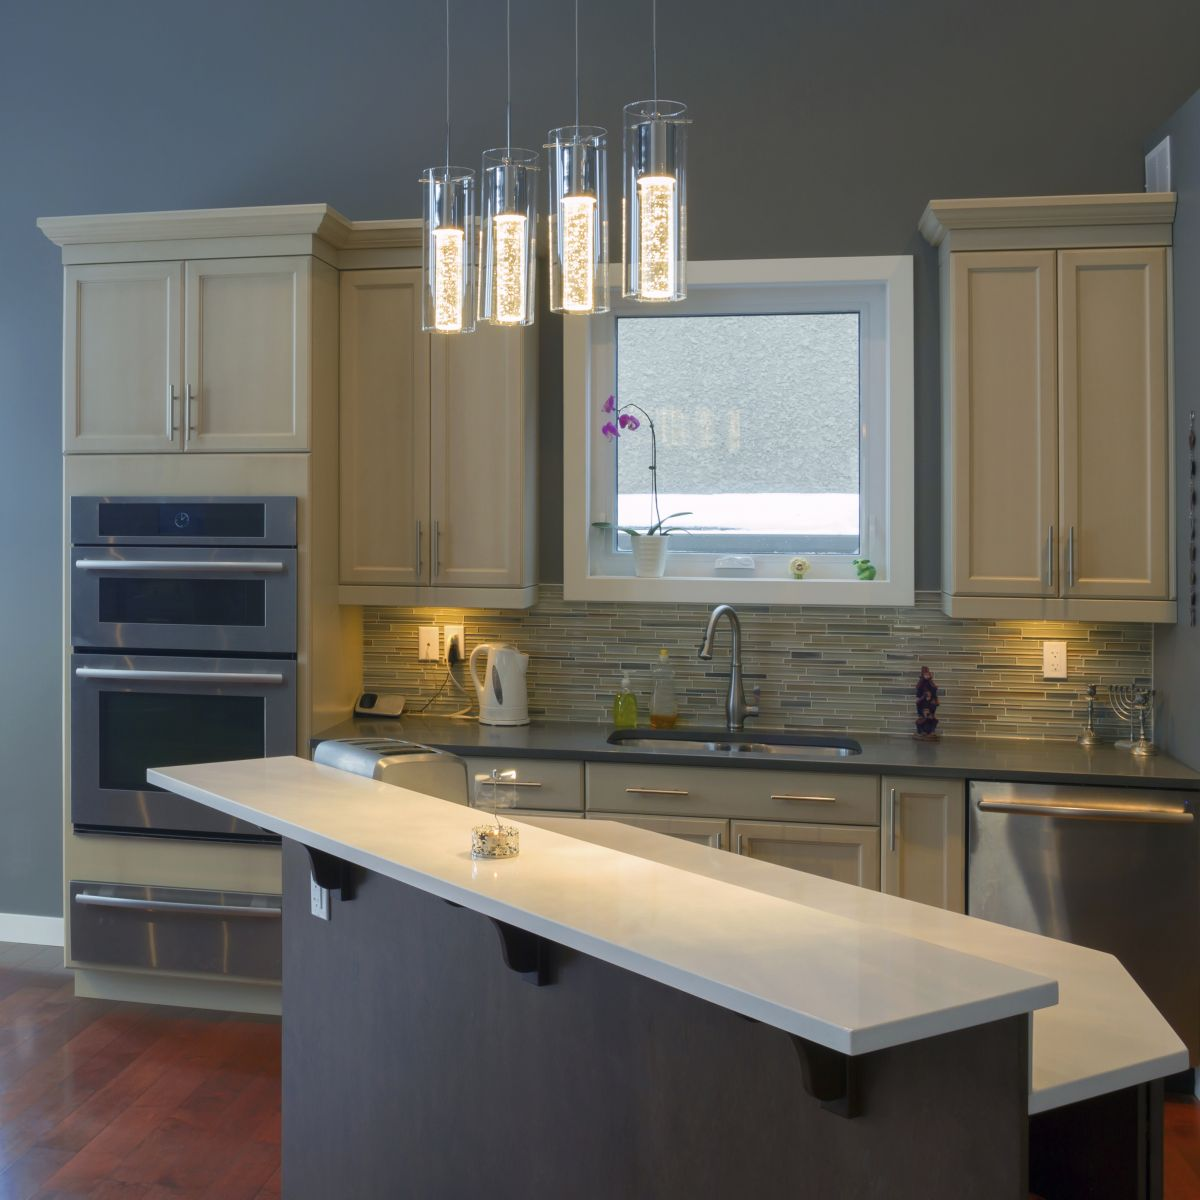 Kitchen Cabinets Cost: How Much Does Kitchen Cabinet Refacing Cost?